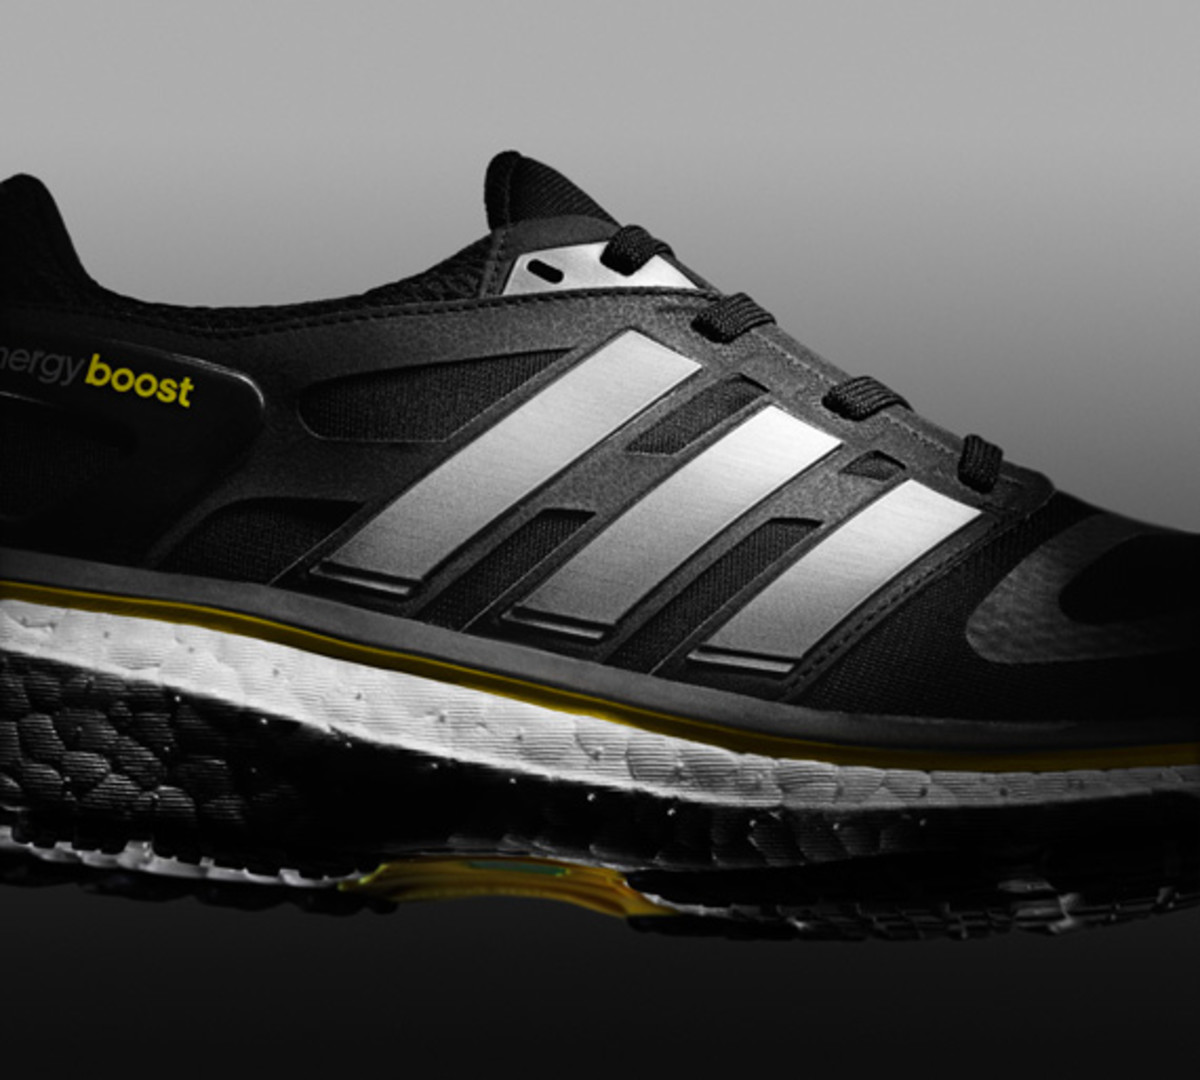 adidas-boost-cushioning-technology-video-05